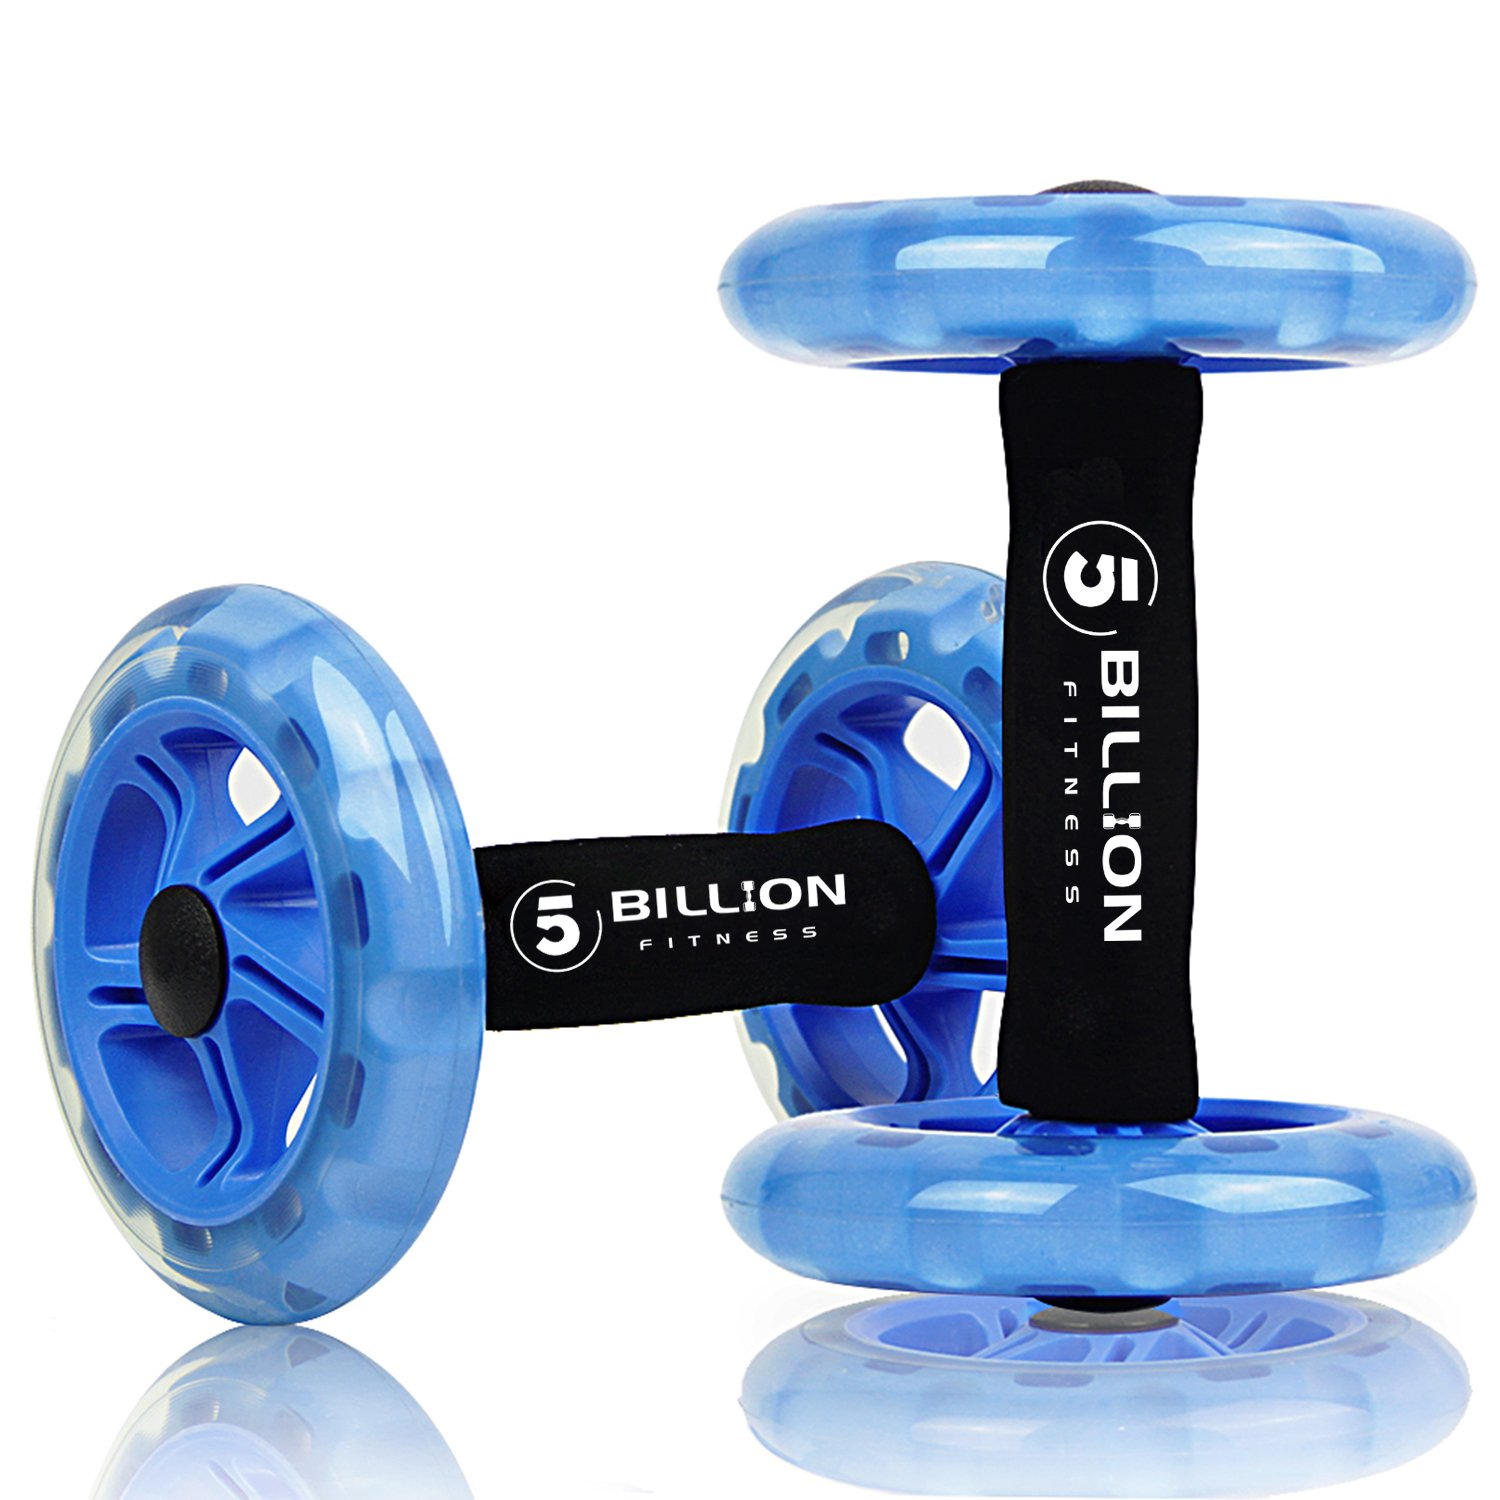 5BILLION Ab wheel Roller & Rueda Abdominal - Double Ab wheel - Entrenamiento para Abs,